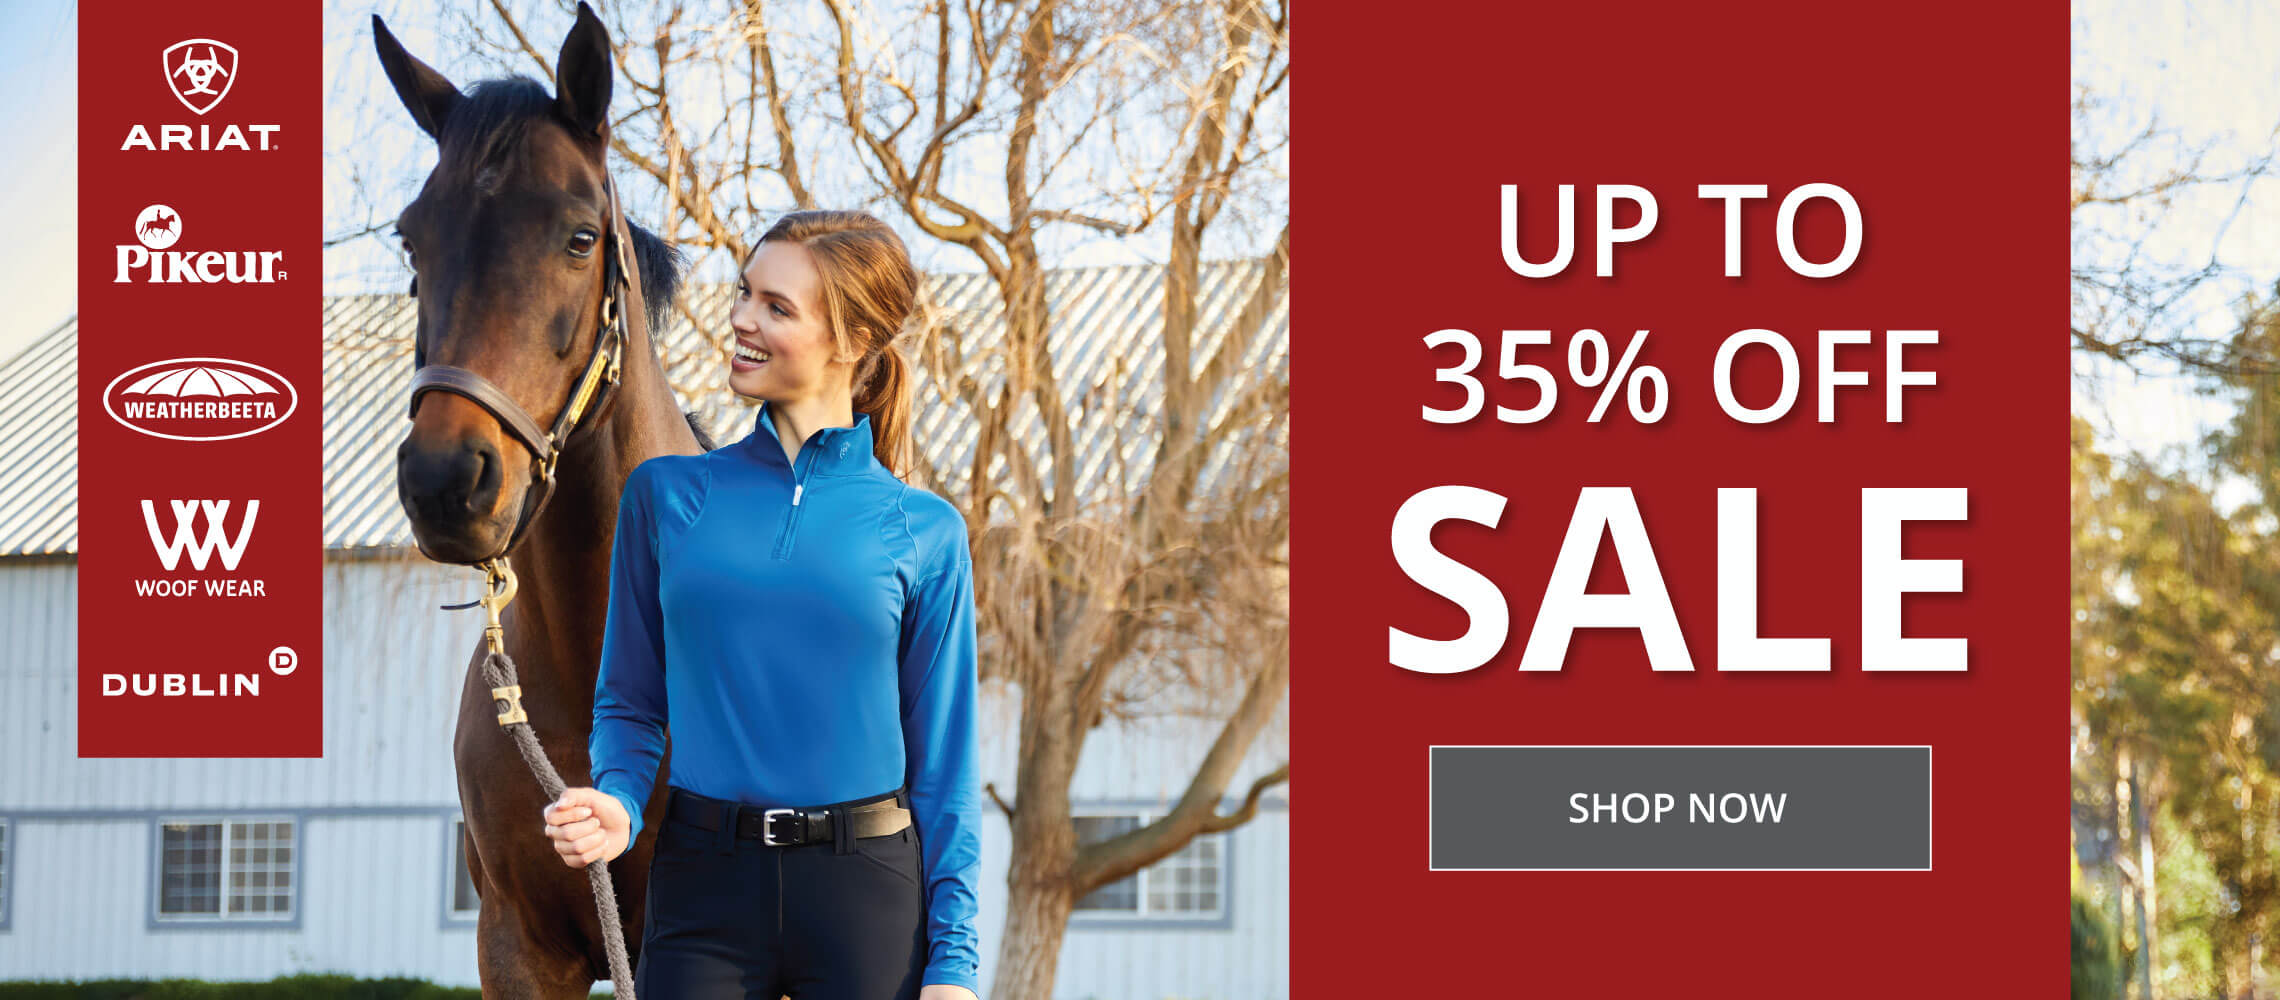 Up to 35% off sale